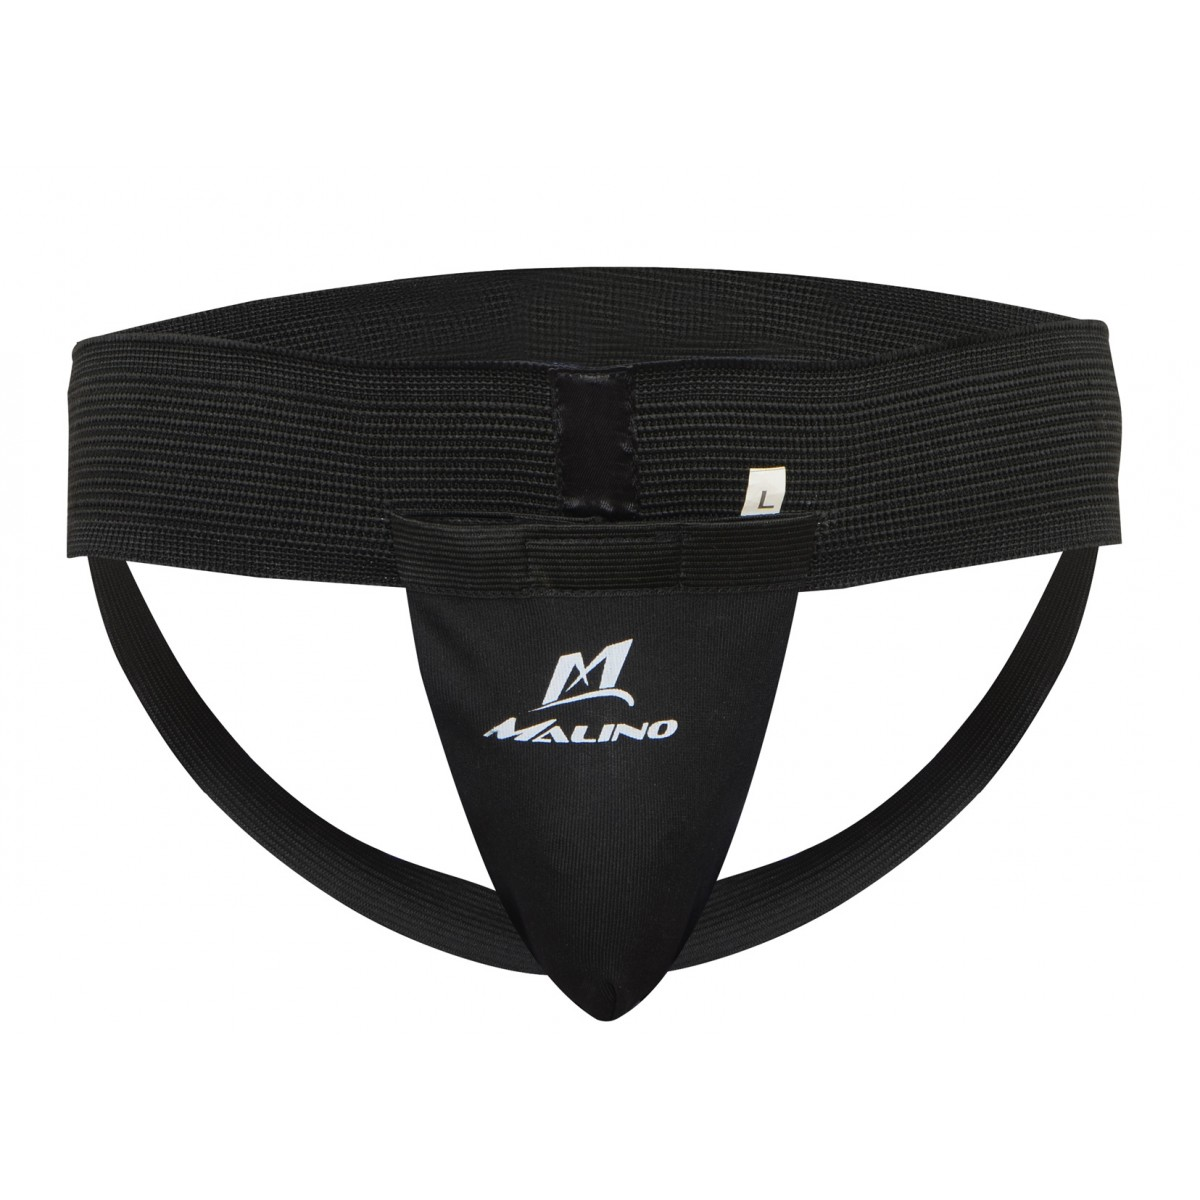 Groin Guards for Men with Black Elastic Strap